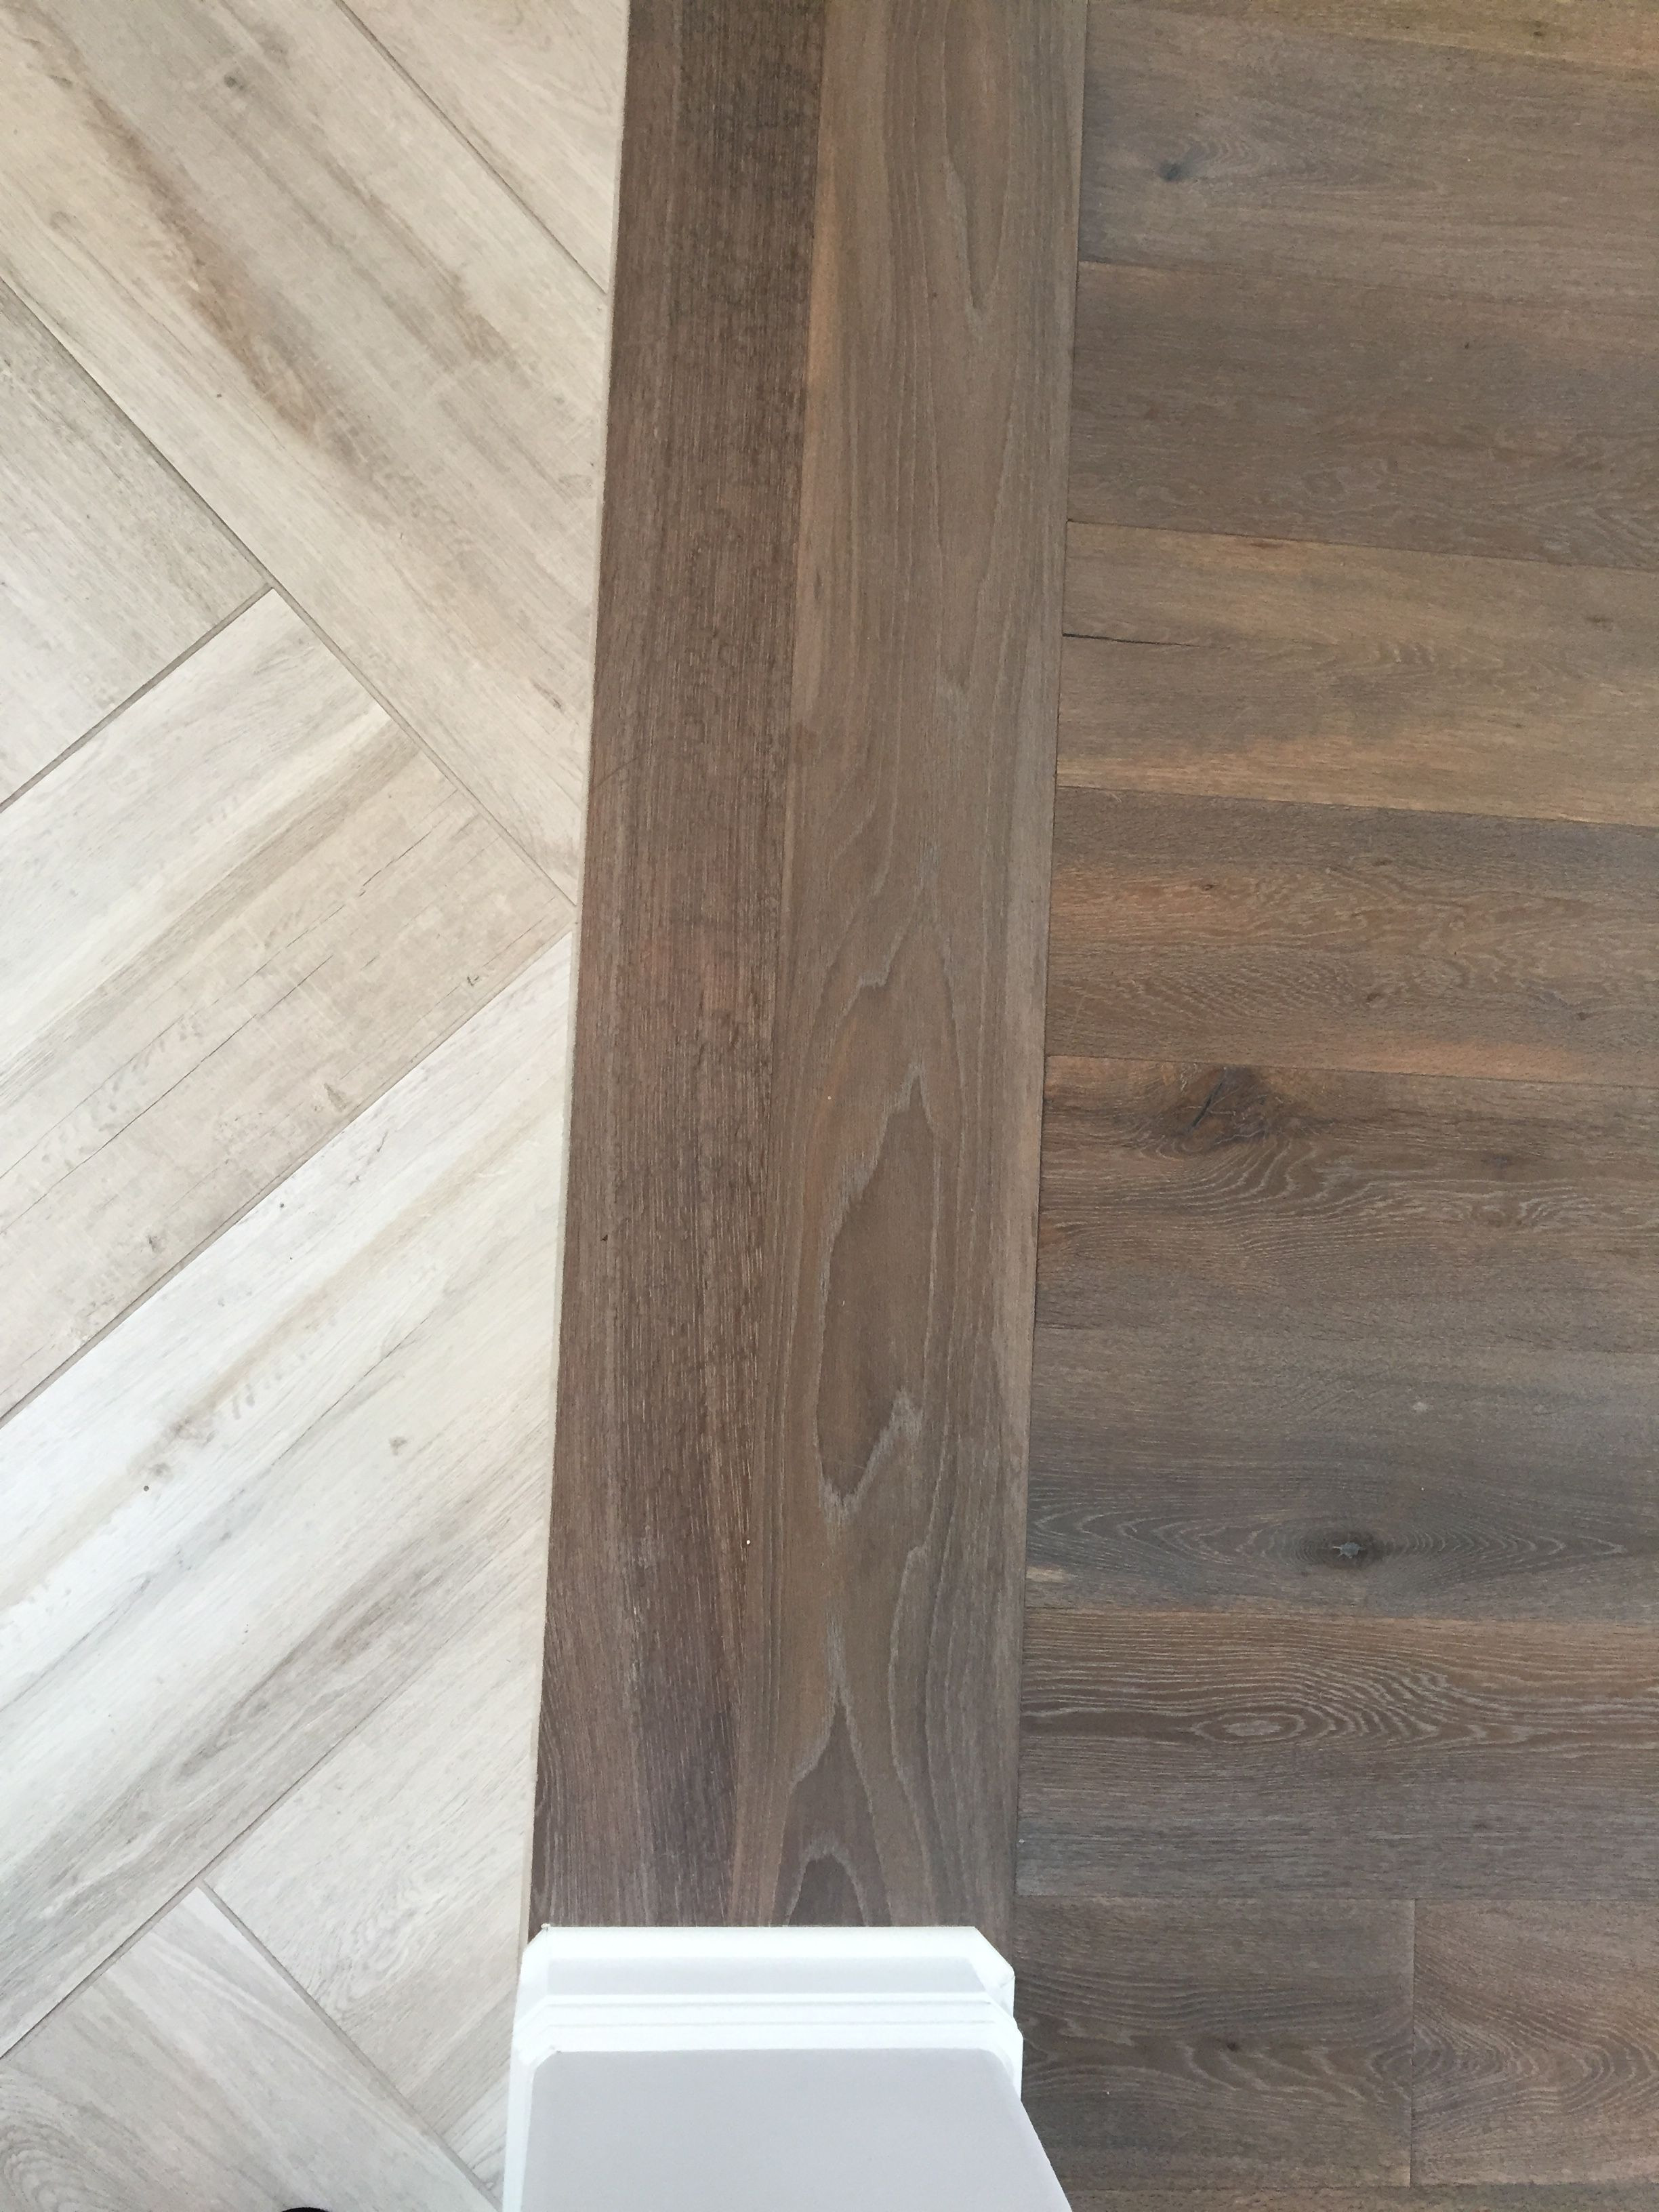 can you paint hardwood floors without sanding of floor transition laminate to herringbone tile pattern model in floor transition laminate to herringbone tile pattern herringbone tile pattern herringbone wood floor